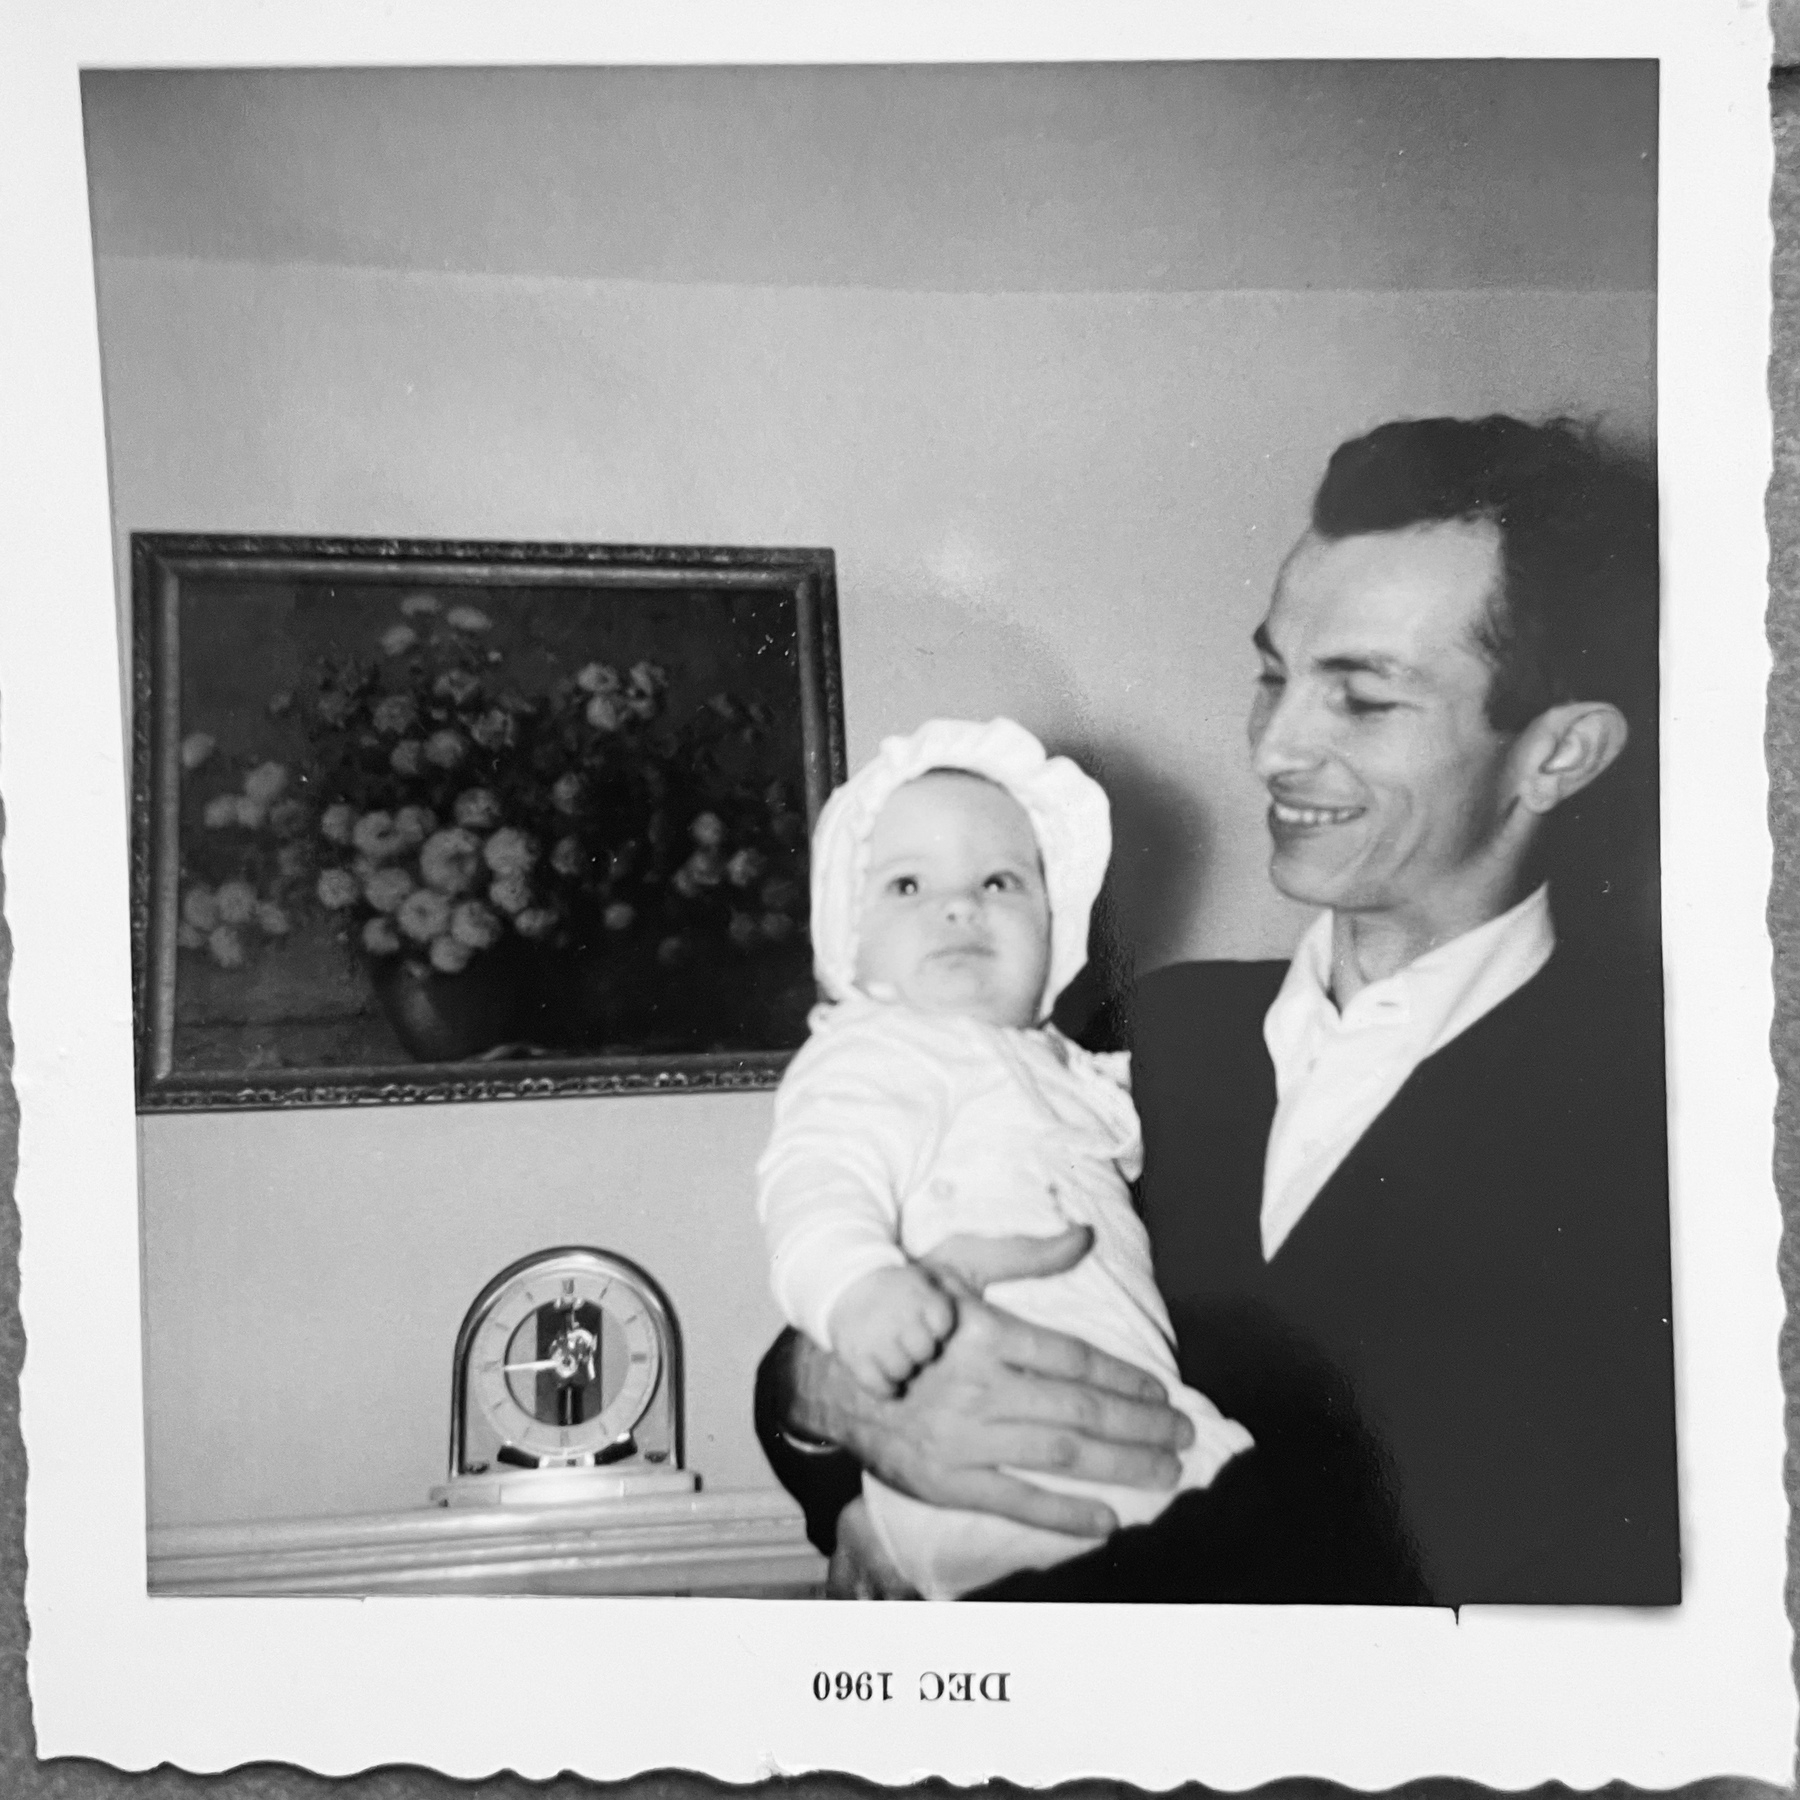 me at 6 months old with my dad in 1960